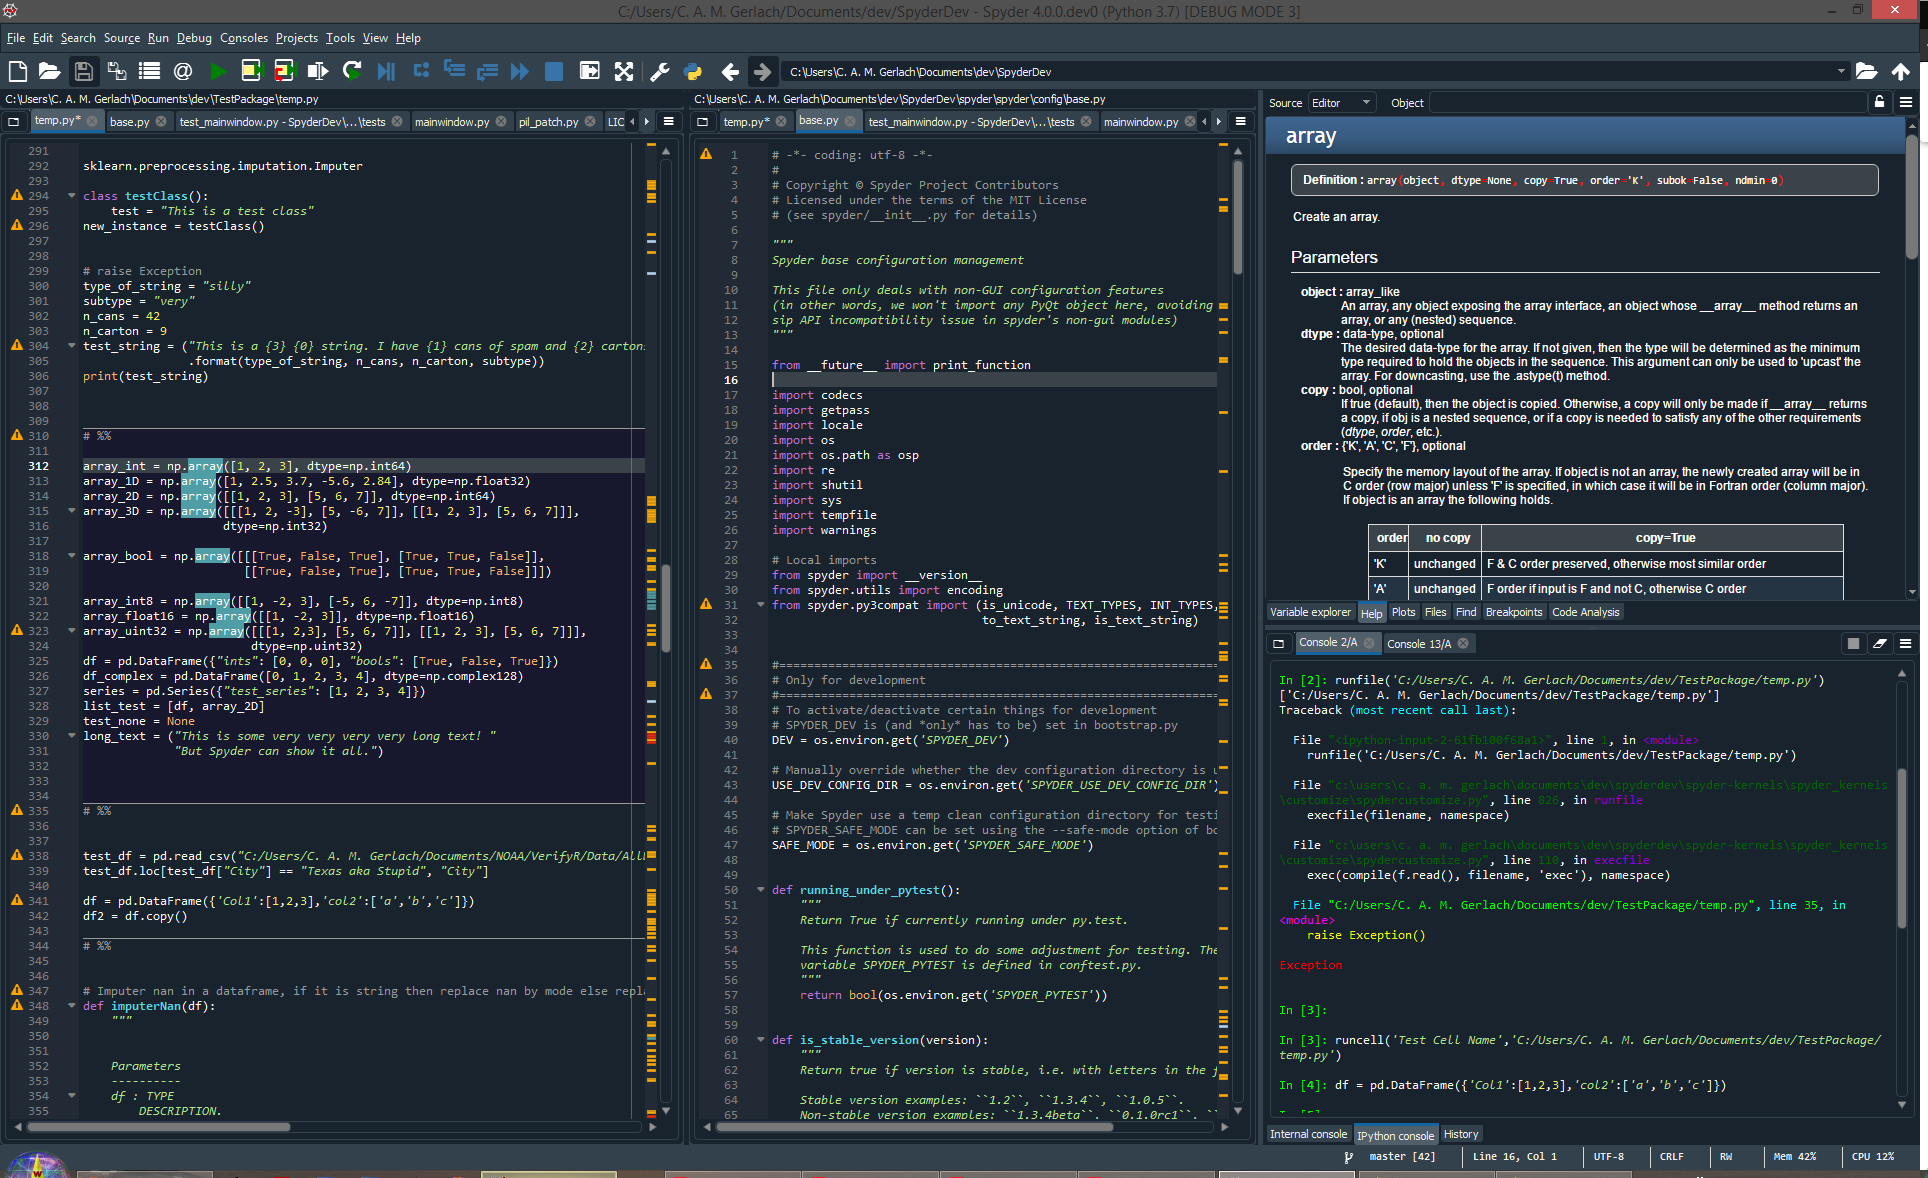 Spyder interface window with code